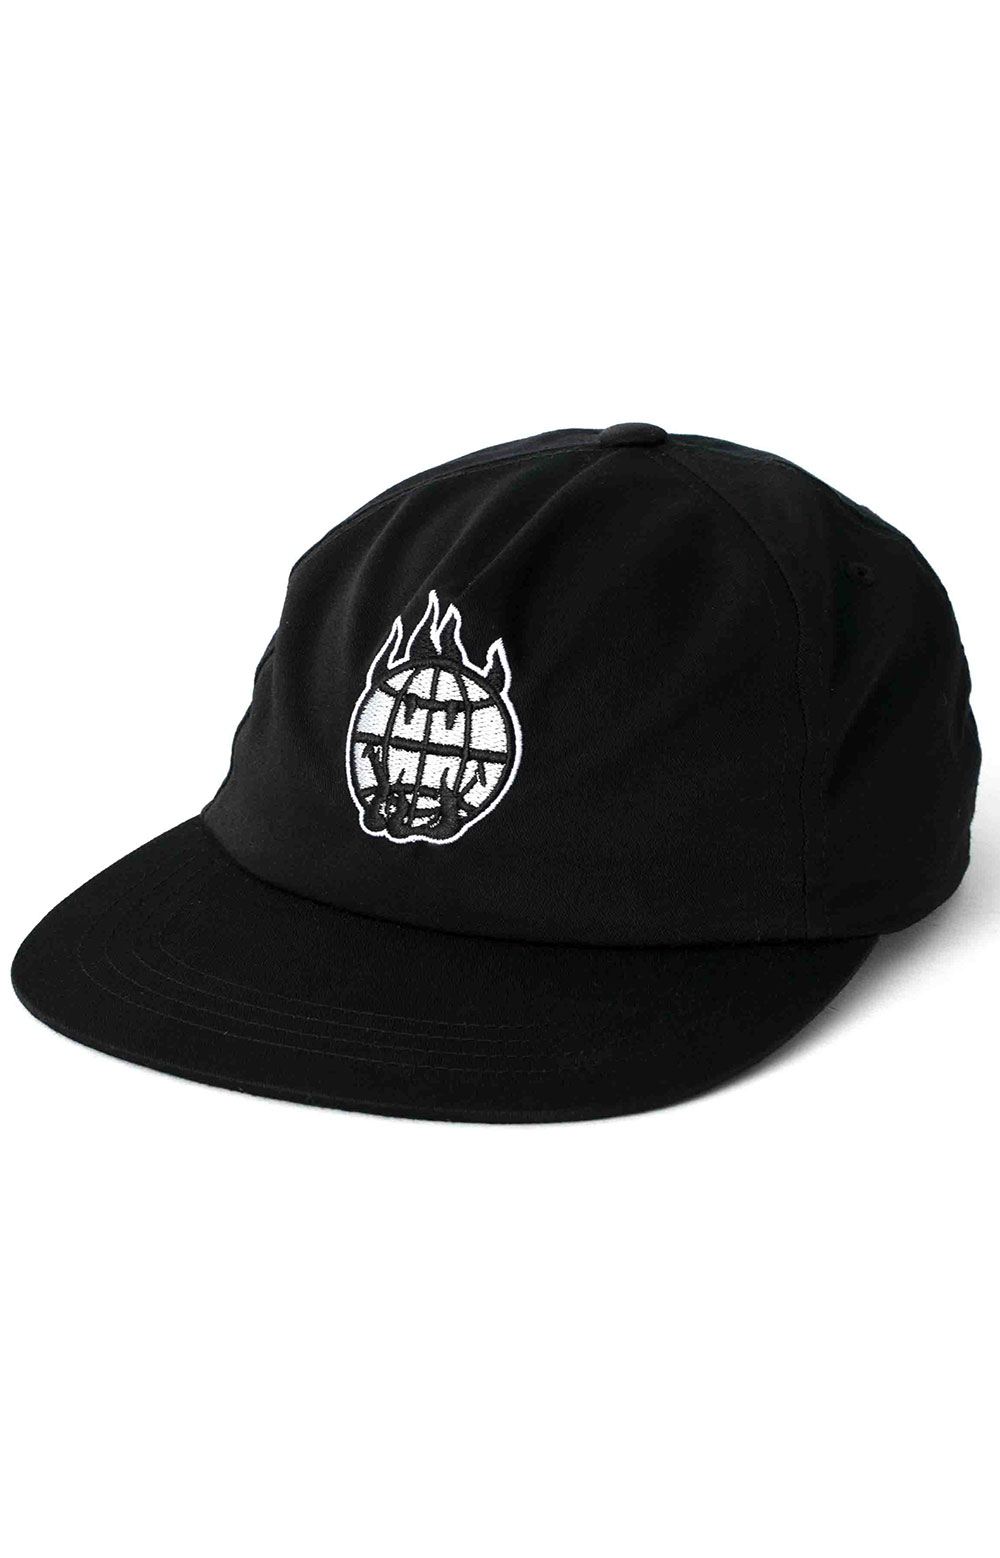 Against The World Snap-Back Hat